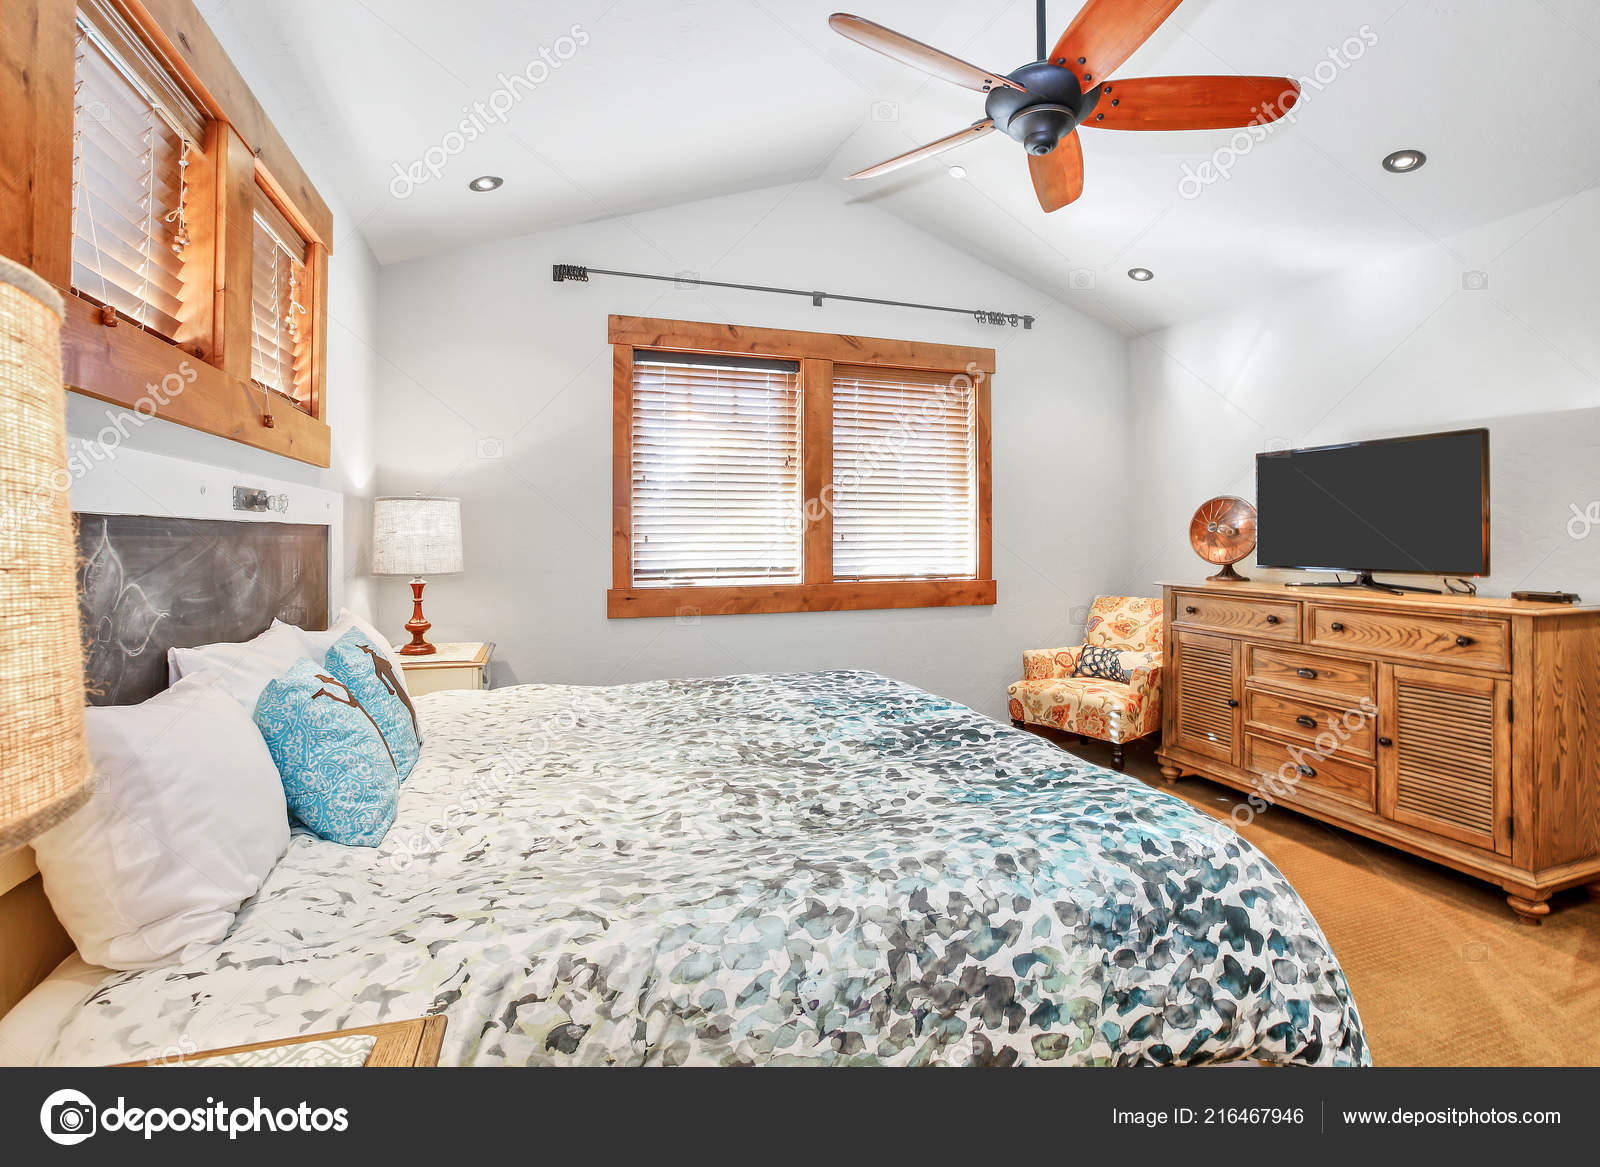 Image of: White Vaulted Ceiling With Wood Beams Light Filled Bedroom White Walls Vaulted Ceiling Blue Bedding Stock Photo C Iriana88w 216467946